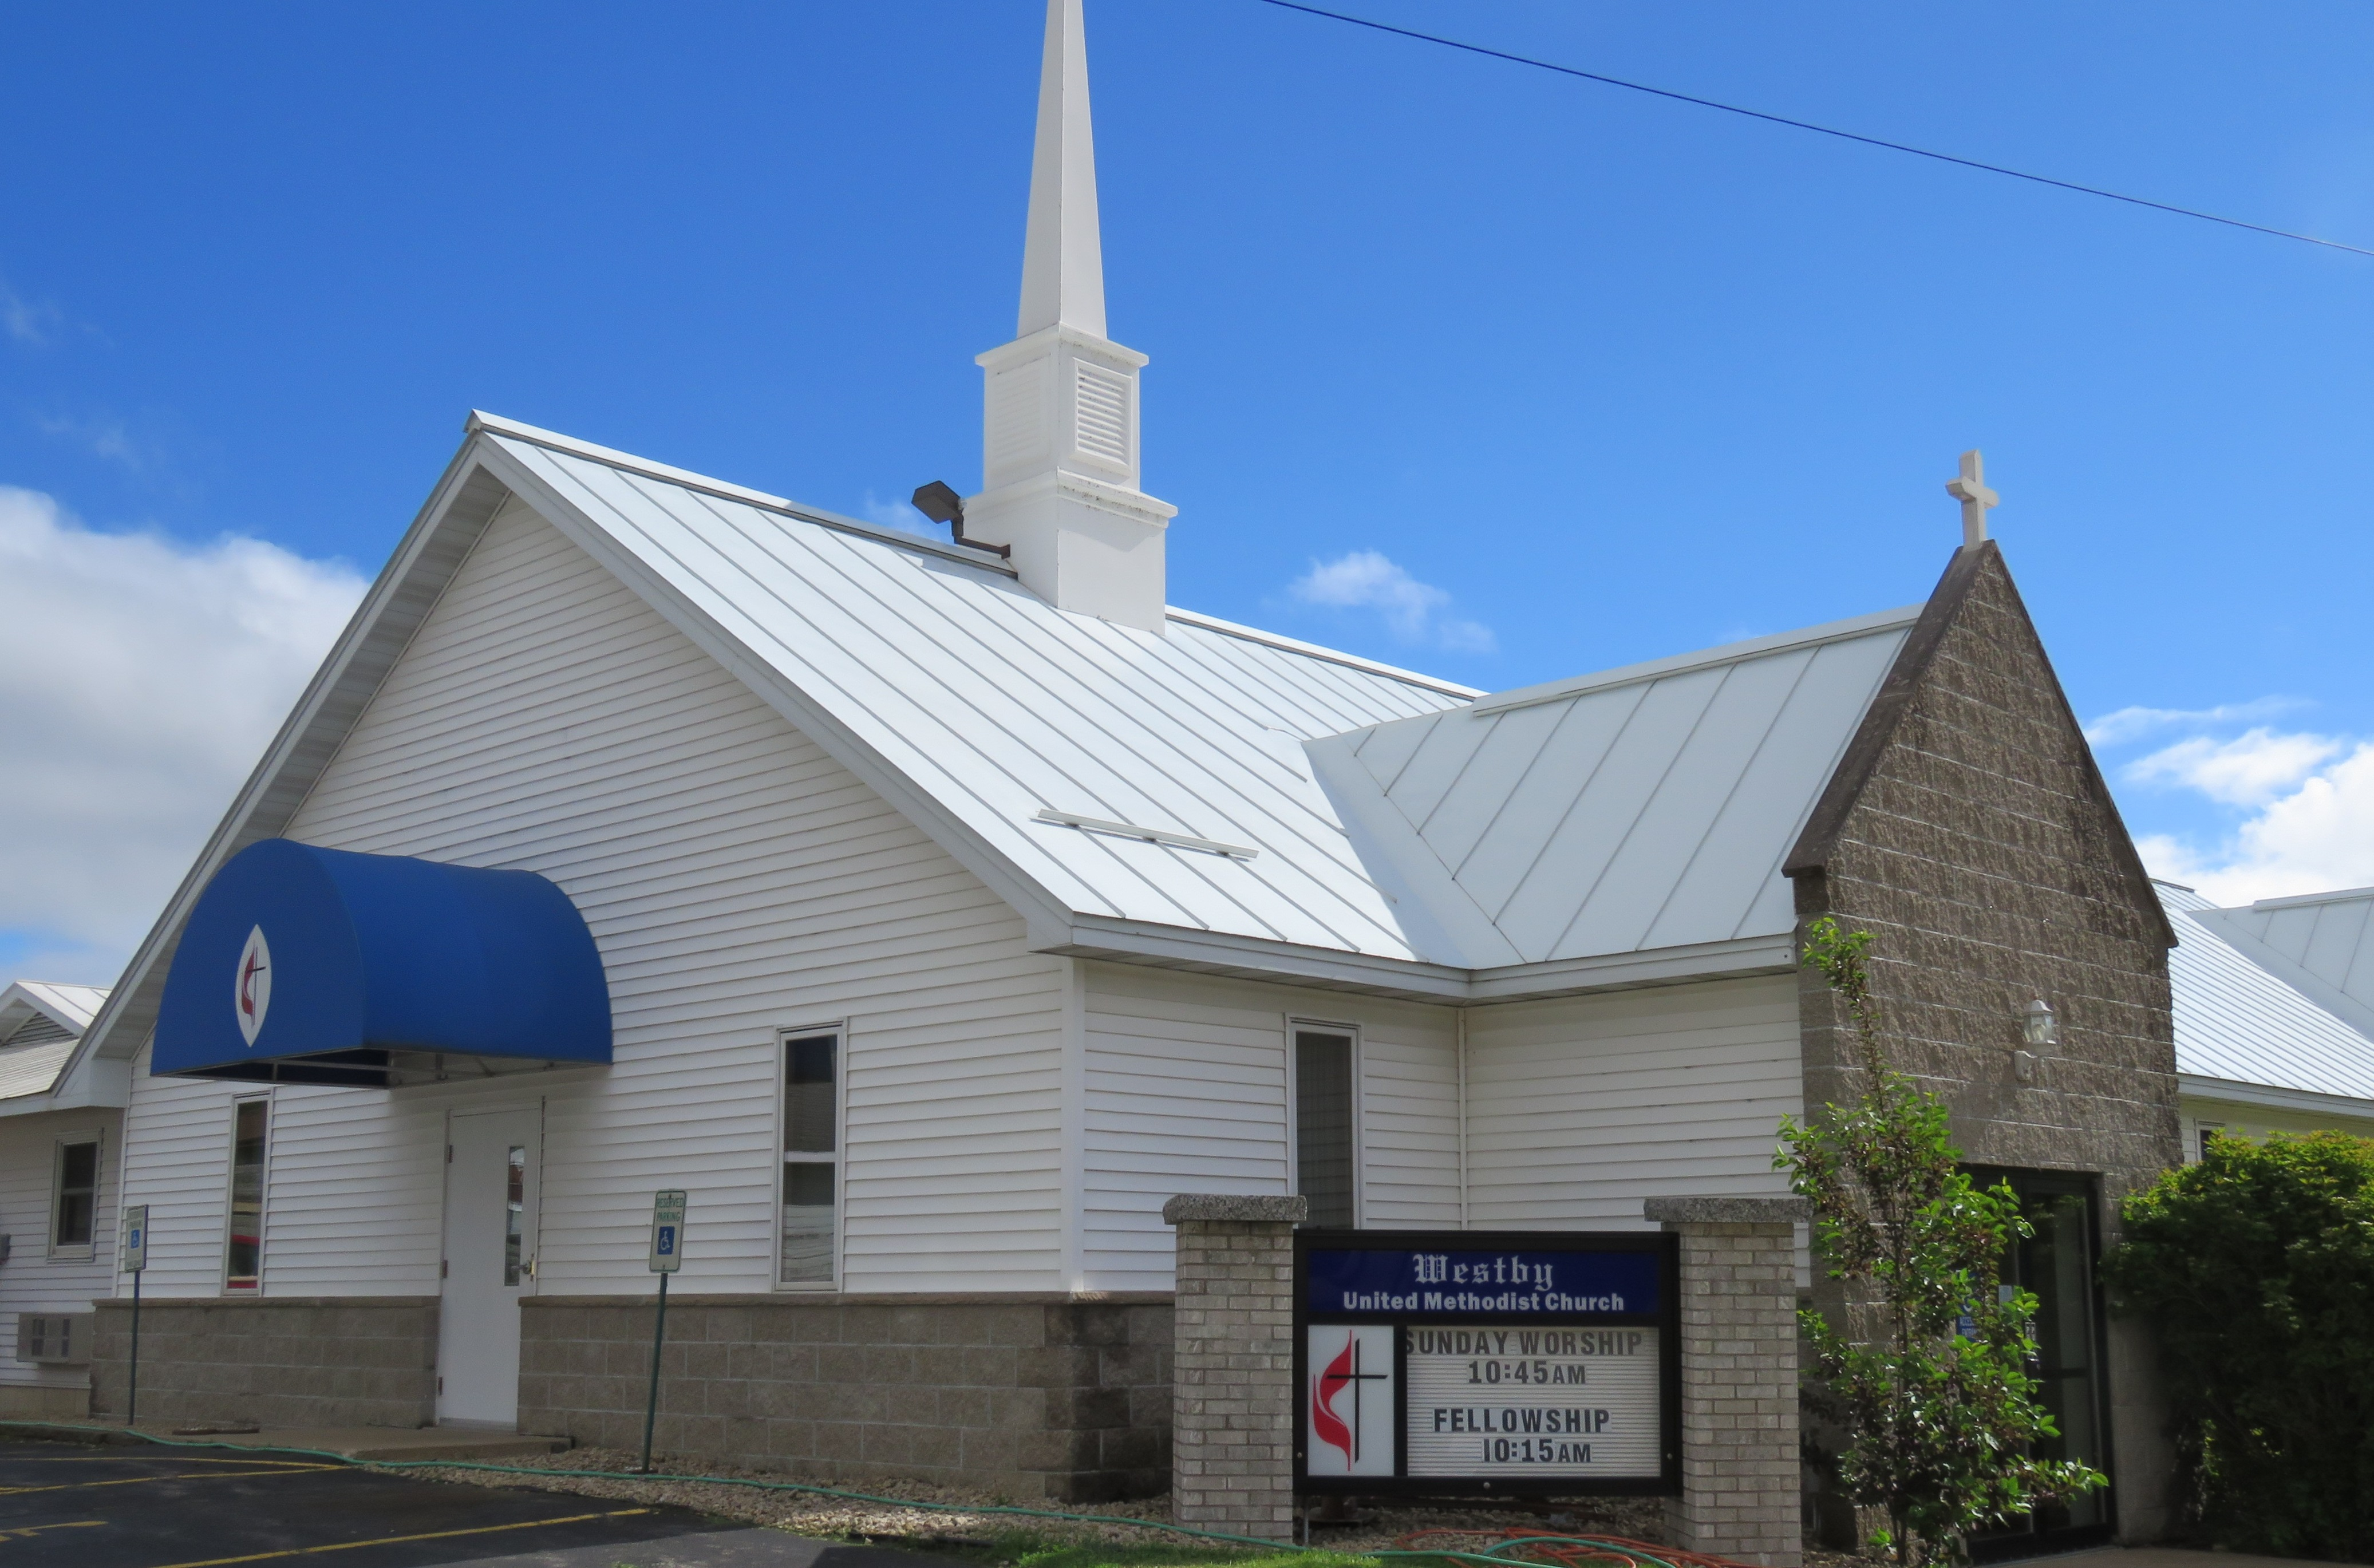 Westby United Methodist Church